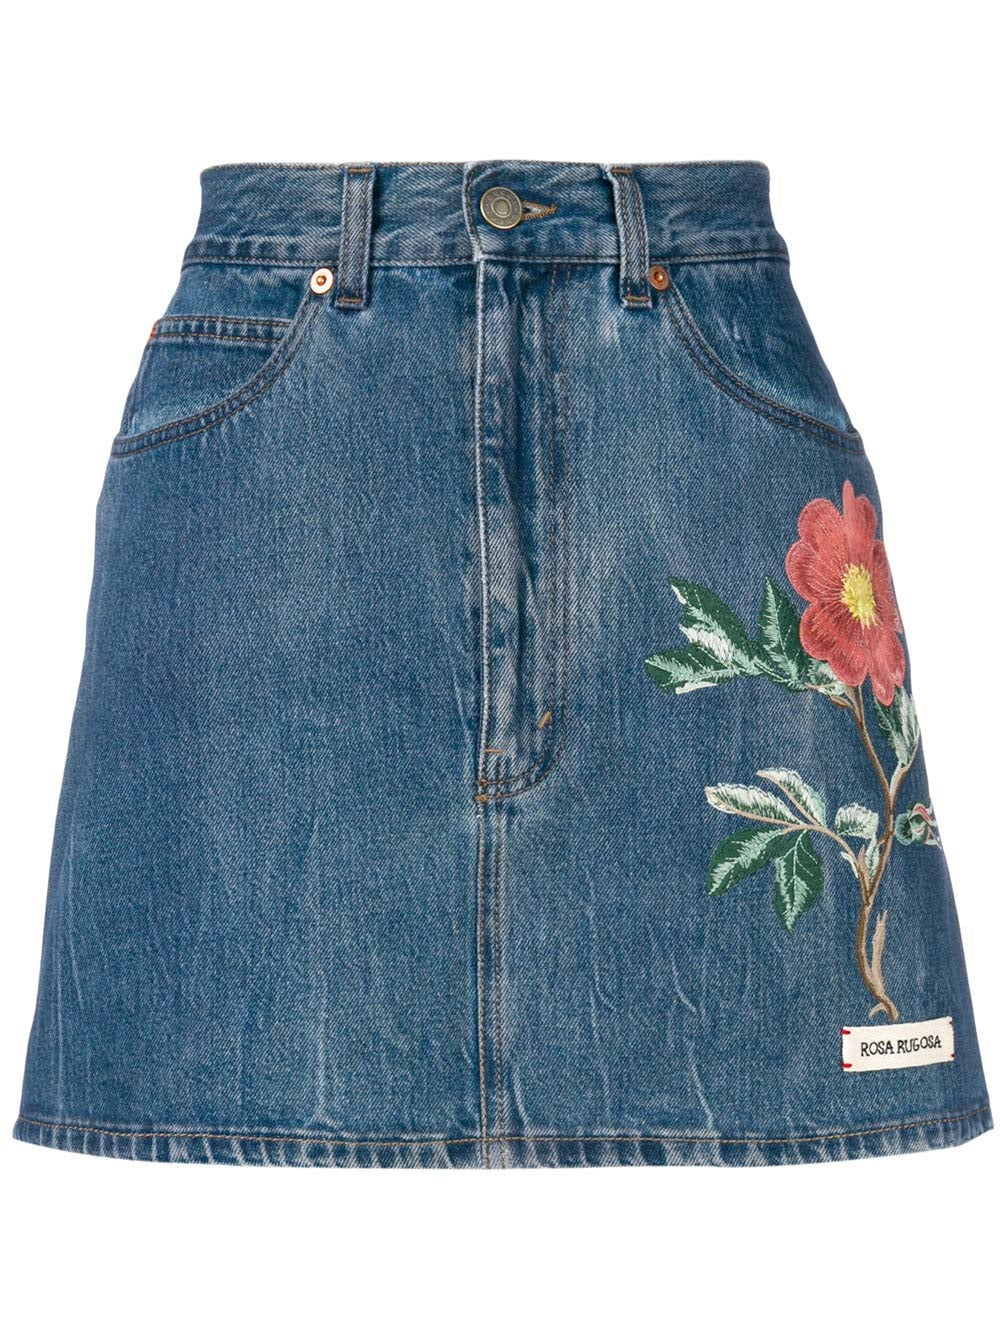 Blue Floral Embroidery Denim Skirt